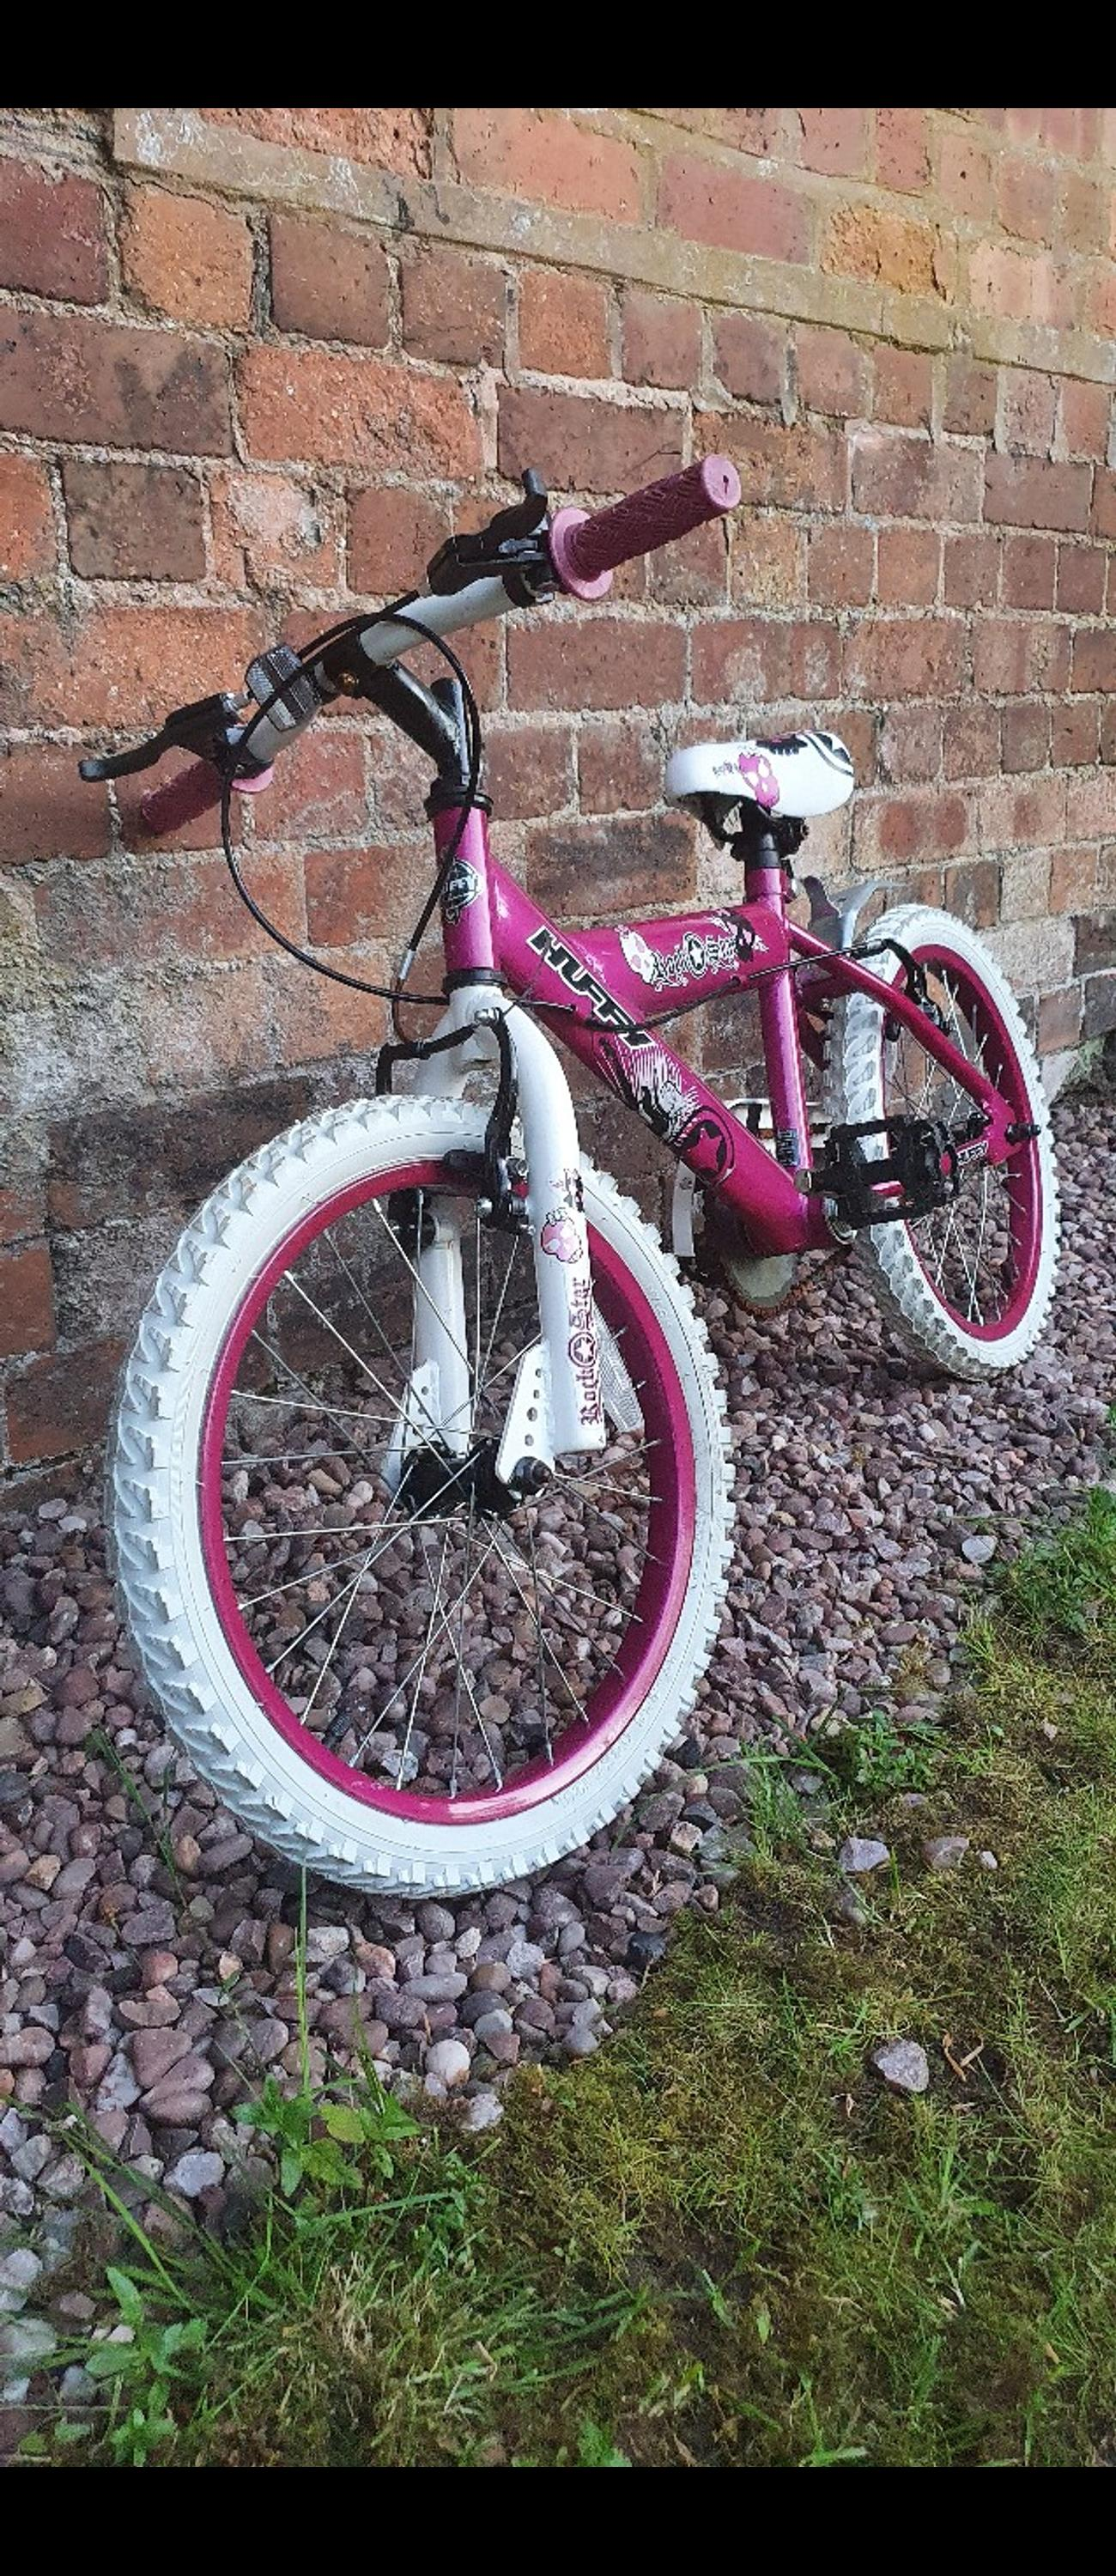 fair condition girls purple bike, in need of a bit of TLC and a clean. I've re-oiled all moving parts tyres will need pumping up. there is a doll seat that attaches to the back which I have put back on but can be taken off again. bargain priced to sell quick.